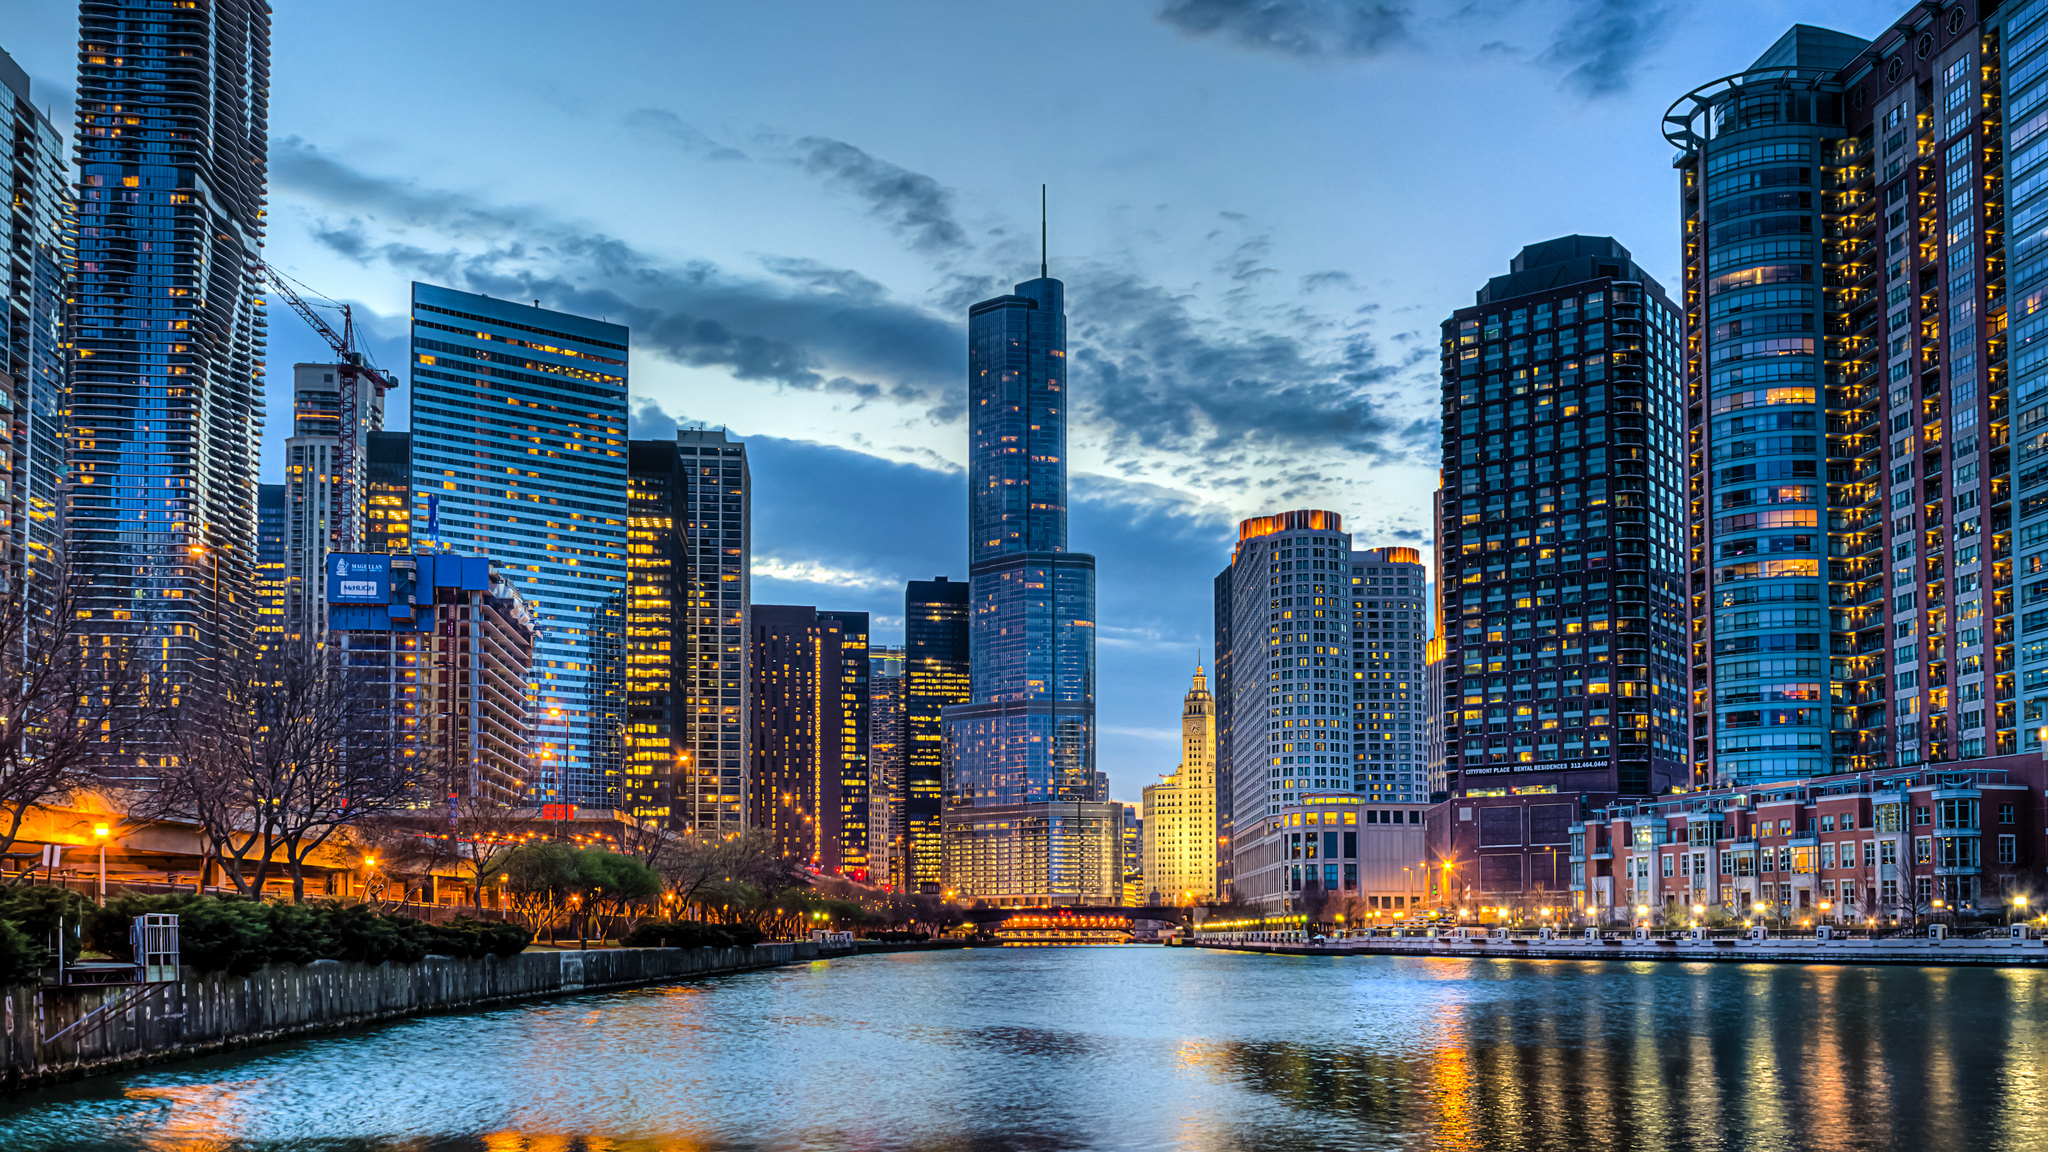 229 Chicago HD Wallpapers Background Images 2048x1152